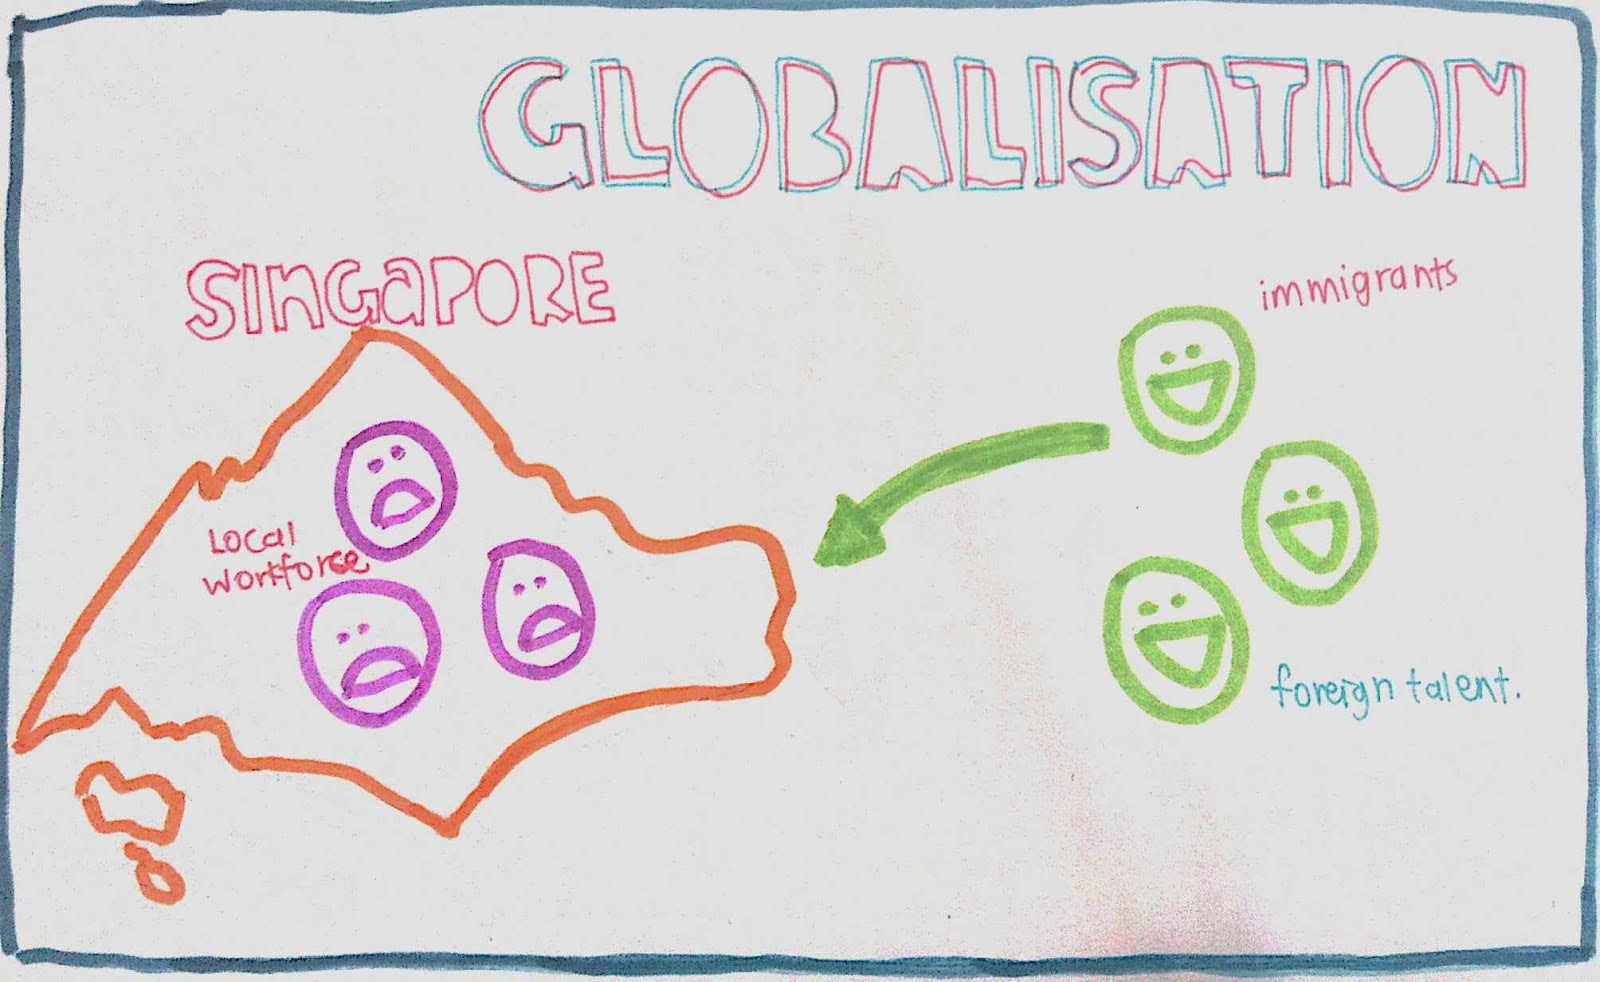 globalisation s impact on singapore Some degree of climate change and its effects could not be avoided,  caused  by globalisation, technological advance, population ageing, and.